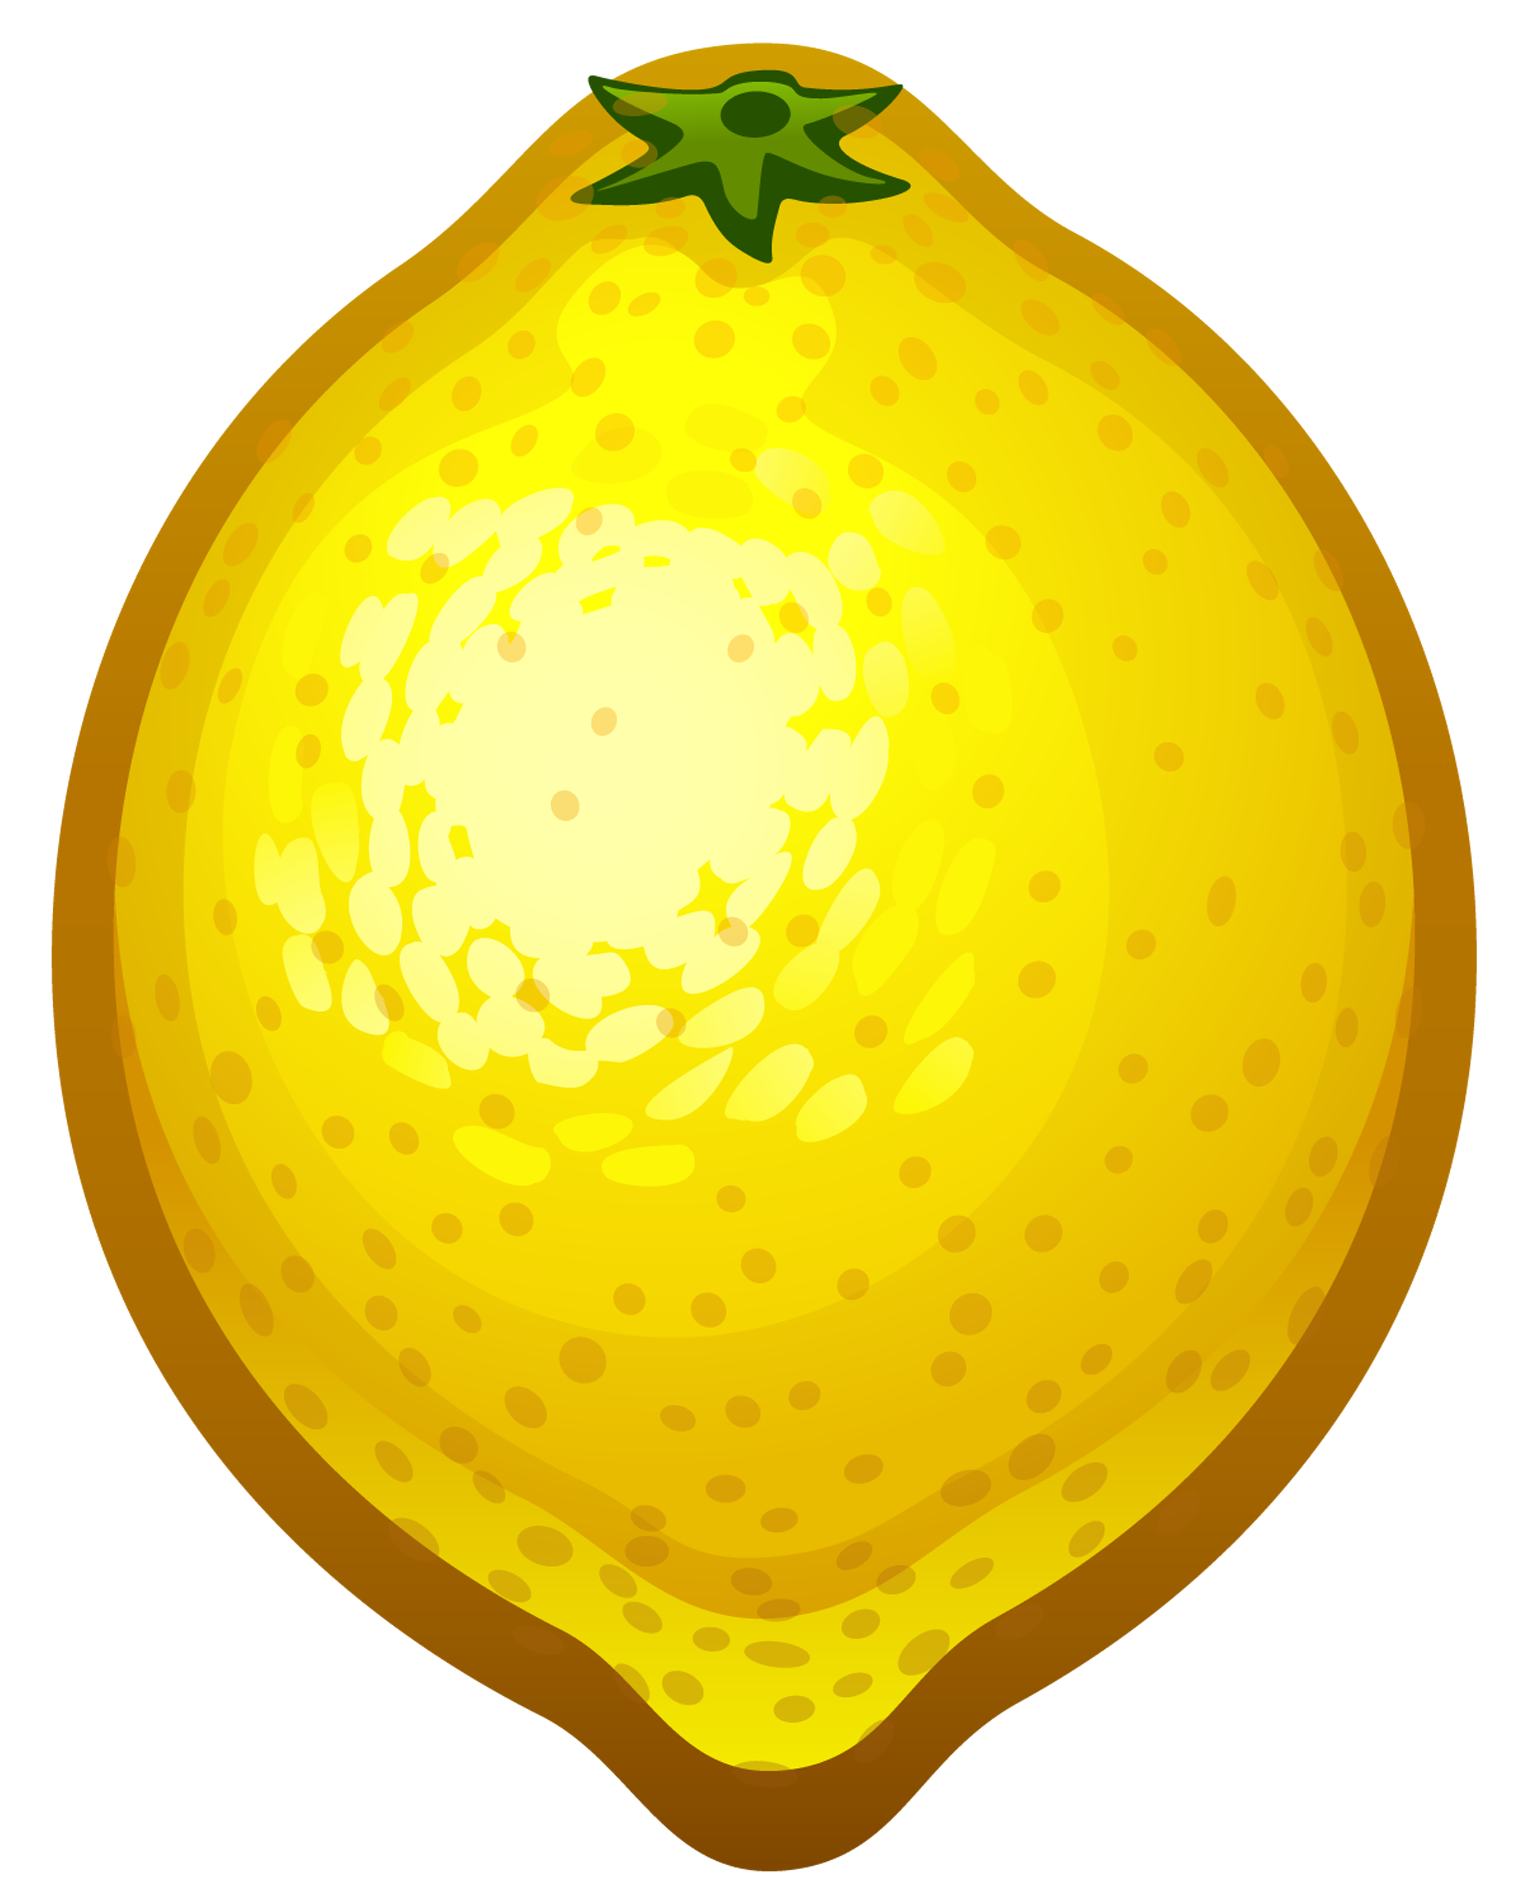 Lemons clipart transparent background. Large painted lemon png